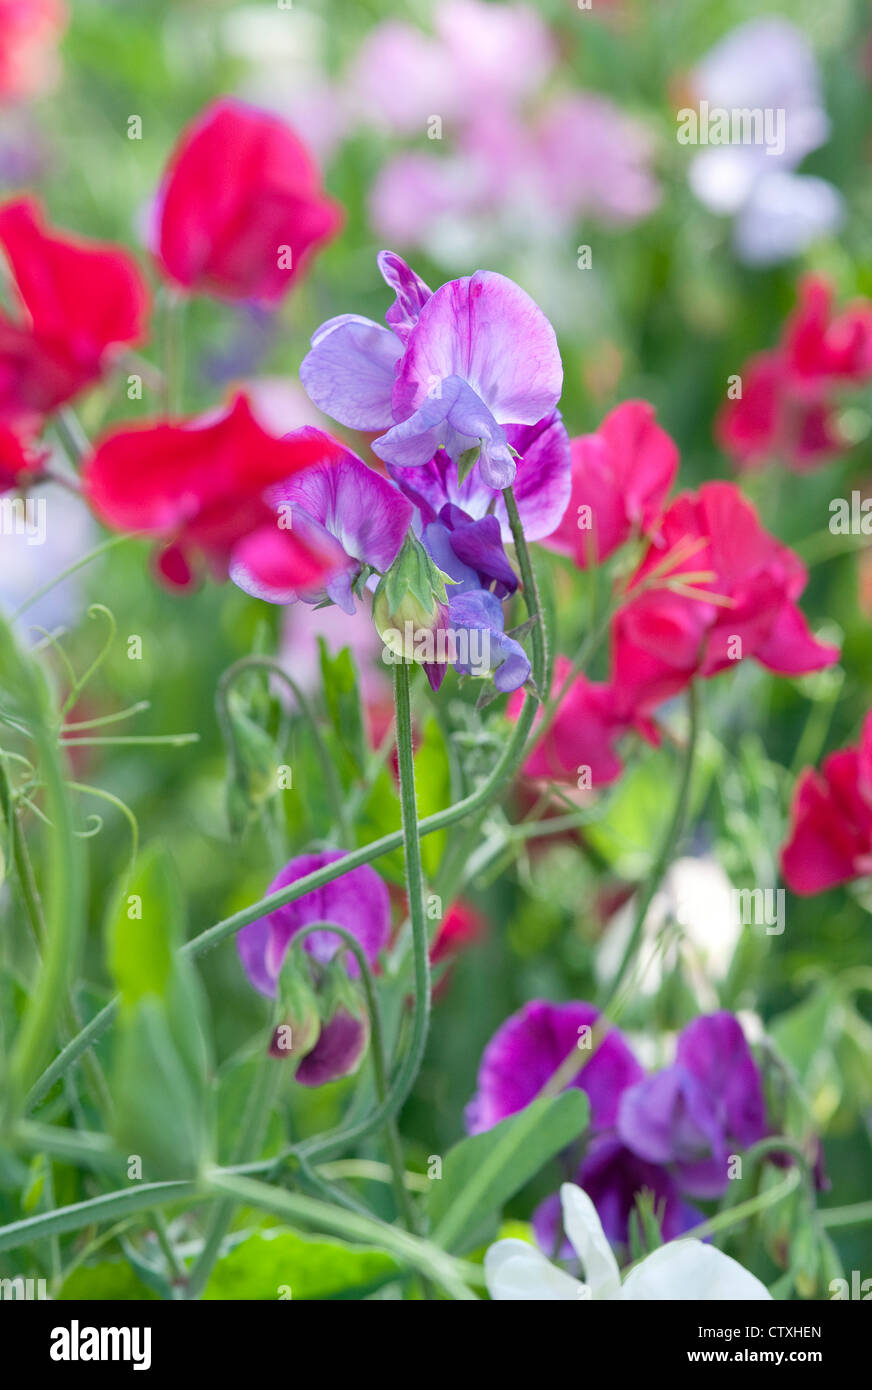 colourful sweet pea flowers in an english garden - Stock Image